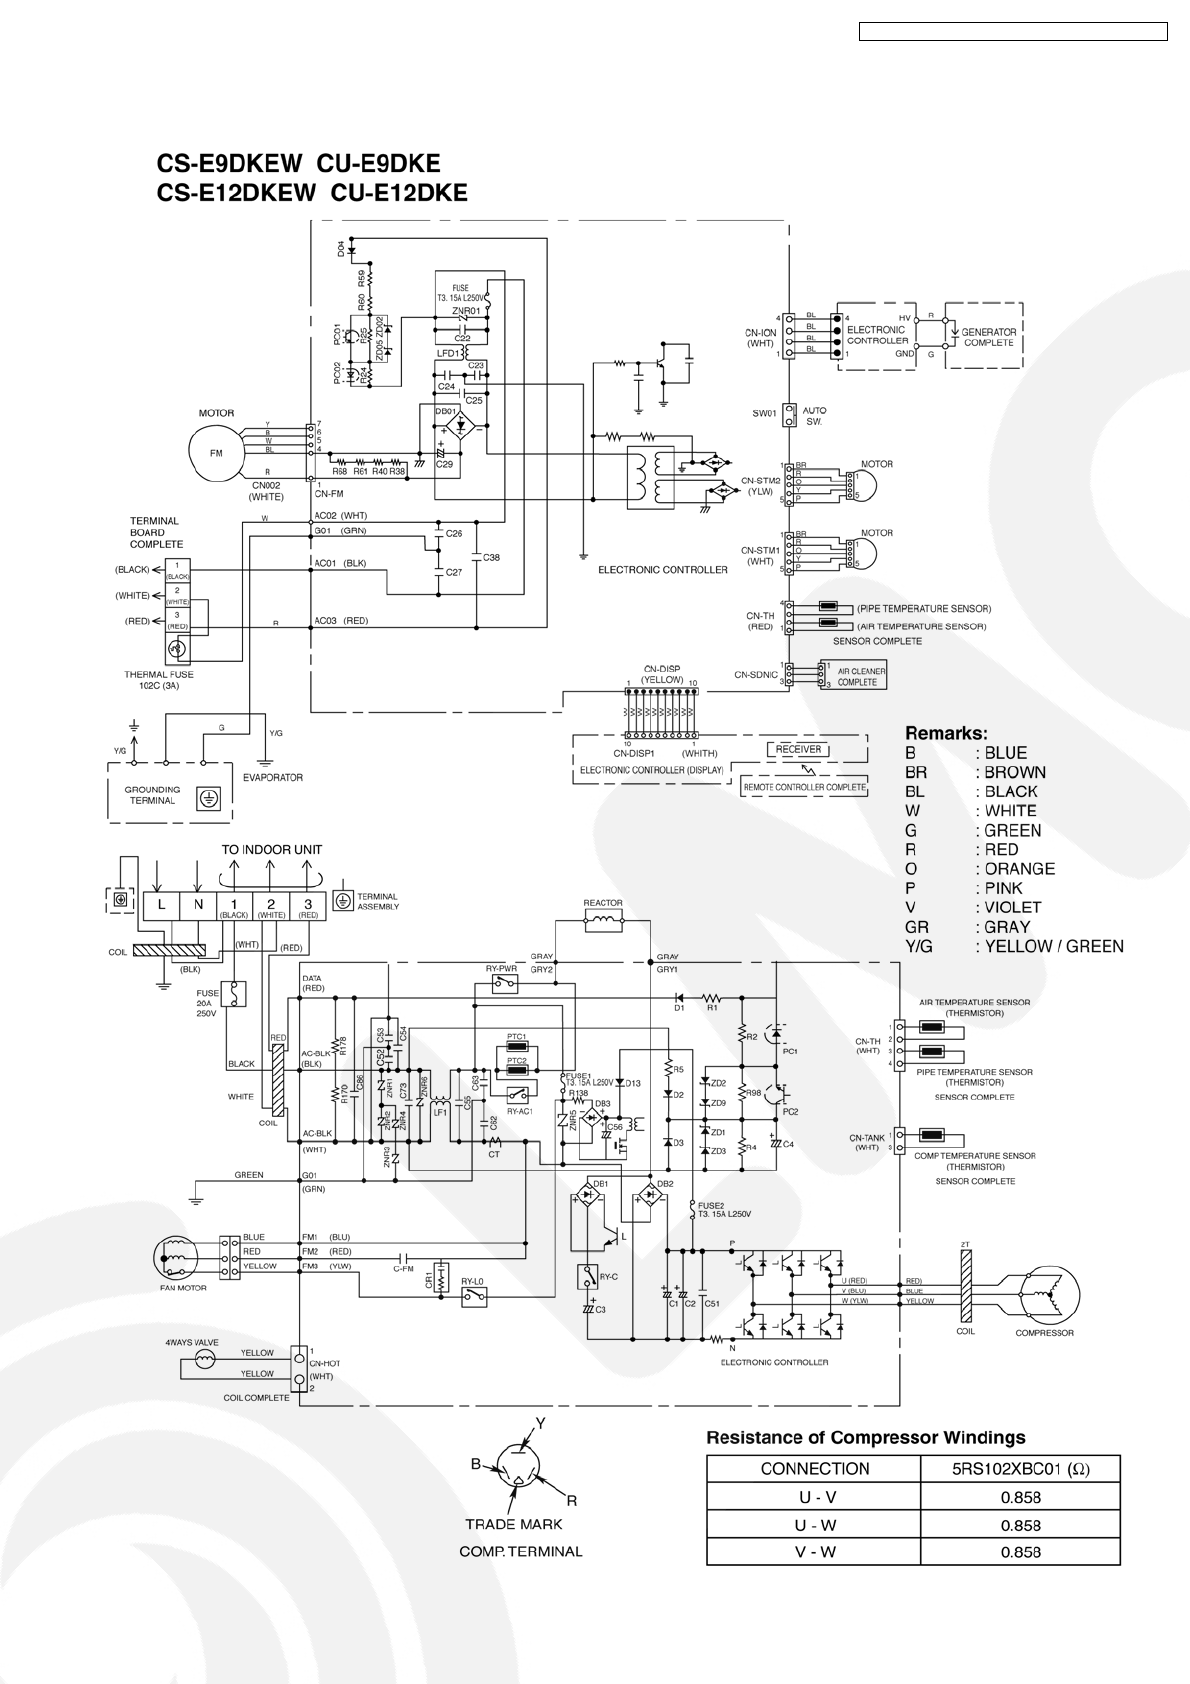 5bc1cf0d d725 4126 8b82 4c2e87dbfb59 bgf page 15 of panasonic air conditioner cs e9dkew user guide panasonic inverter air conditioner wiring diagram at gsmx.co